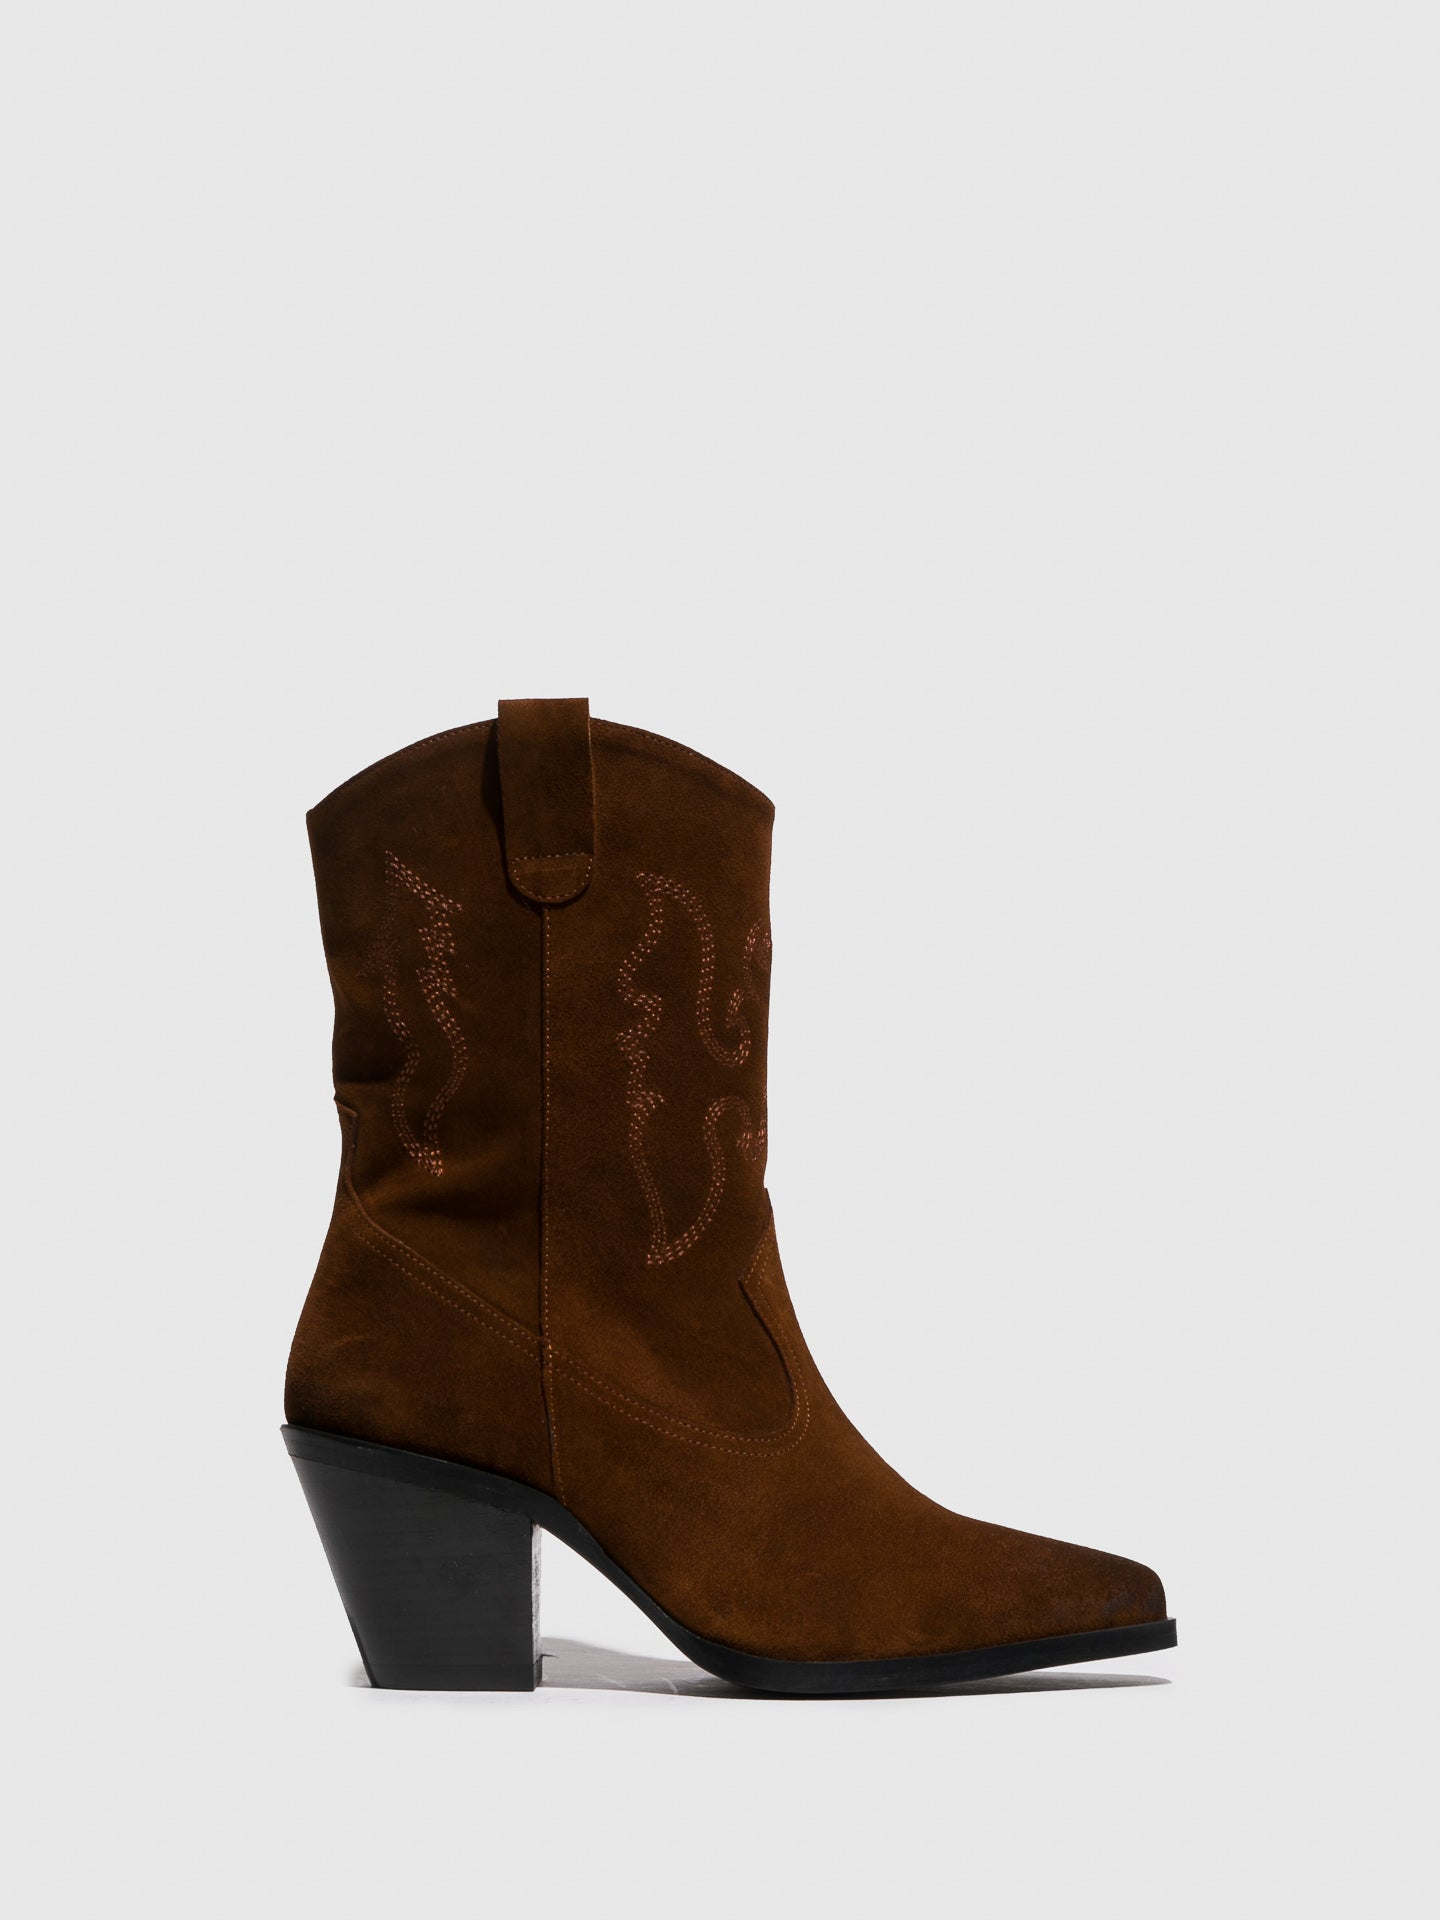 Sofia Costa Camel Zip Up Boots